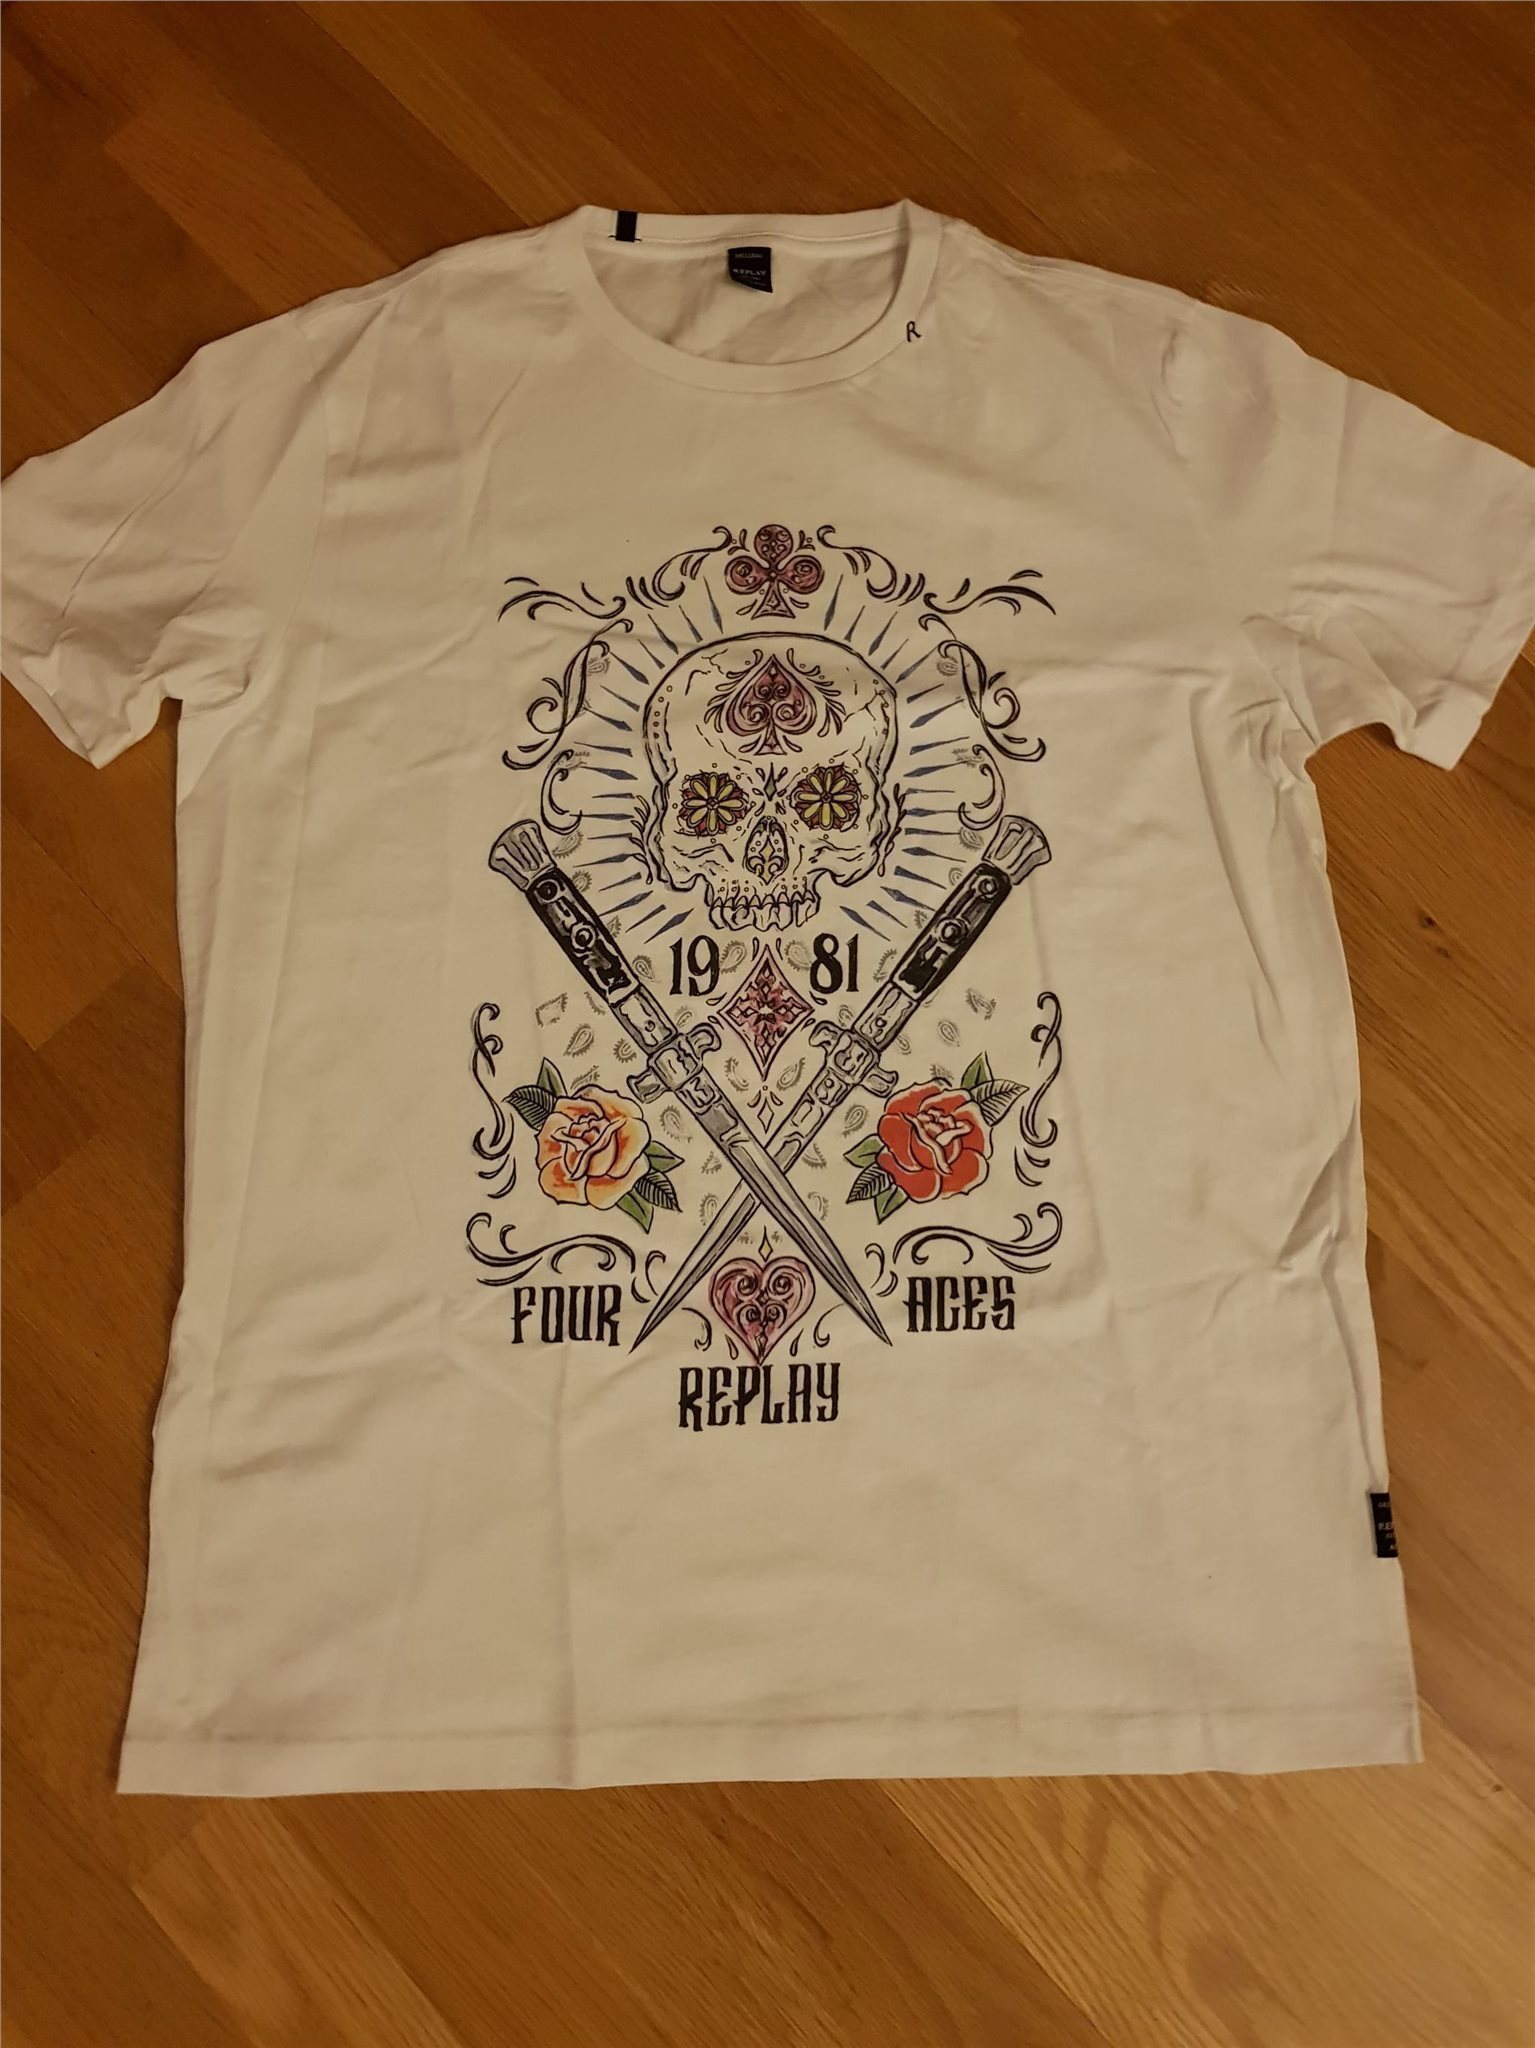 058b23712fc Ny Replay XS vit T-shirt, XS Replay (snabb leverans) 642f75 ...